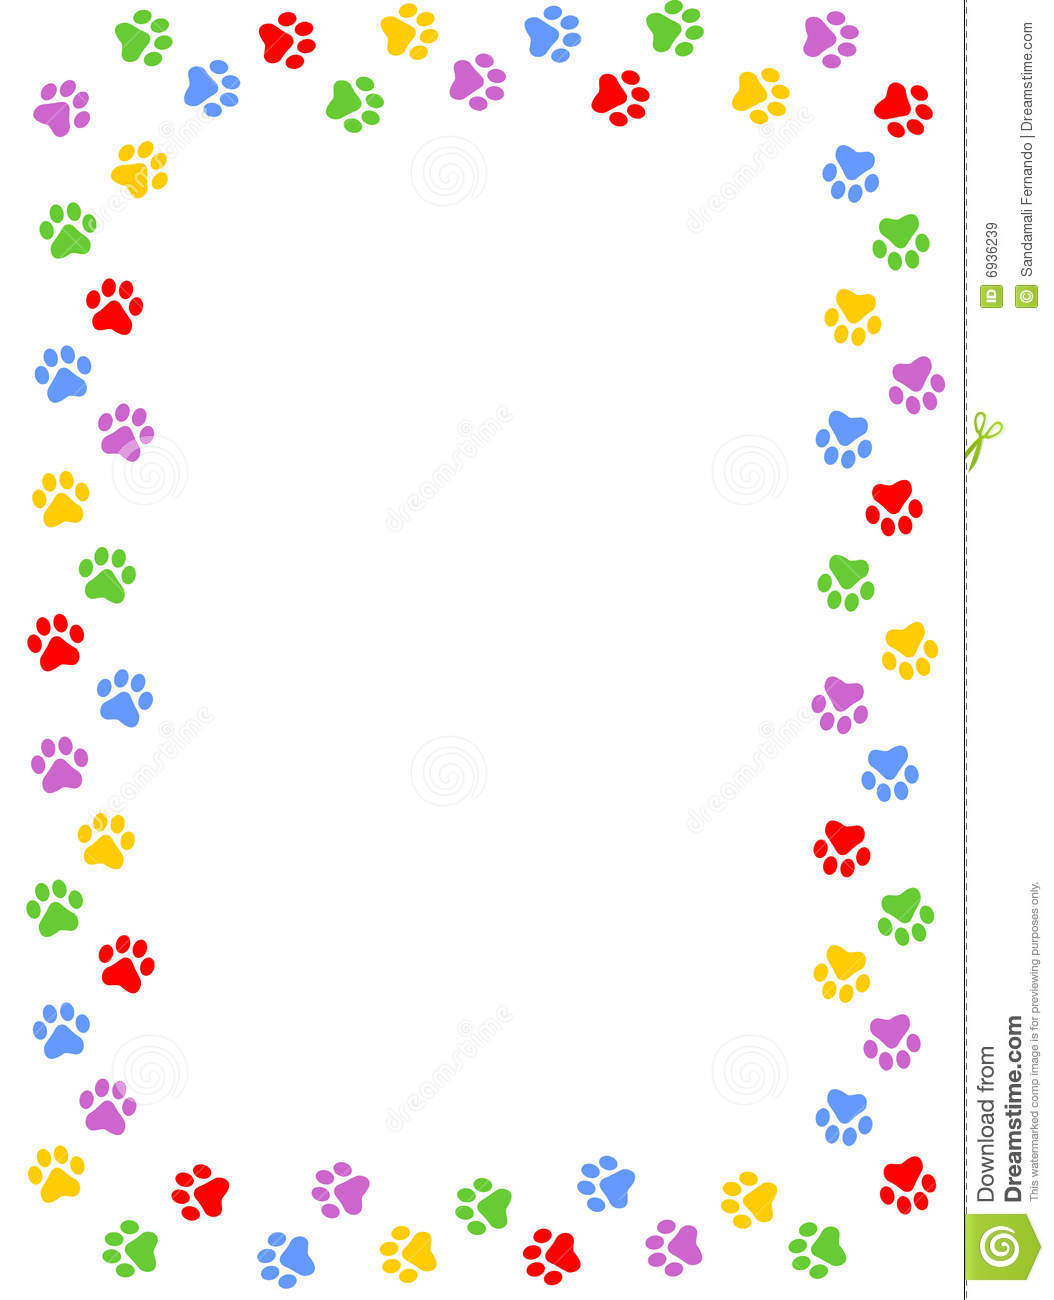 Black And White Polka Dot Wallpaper Border Paw Prints Border Stock Vector Illustration Of Background